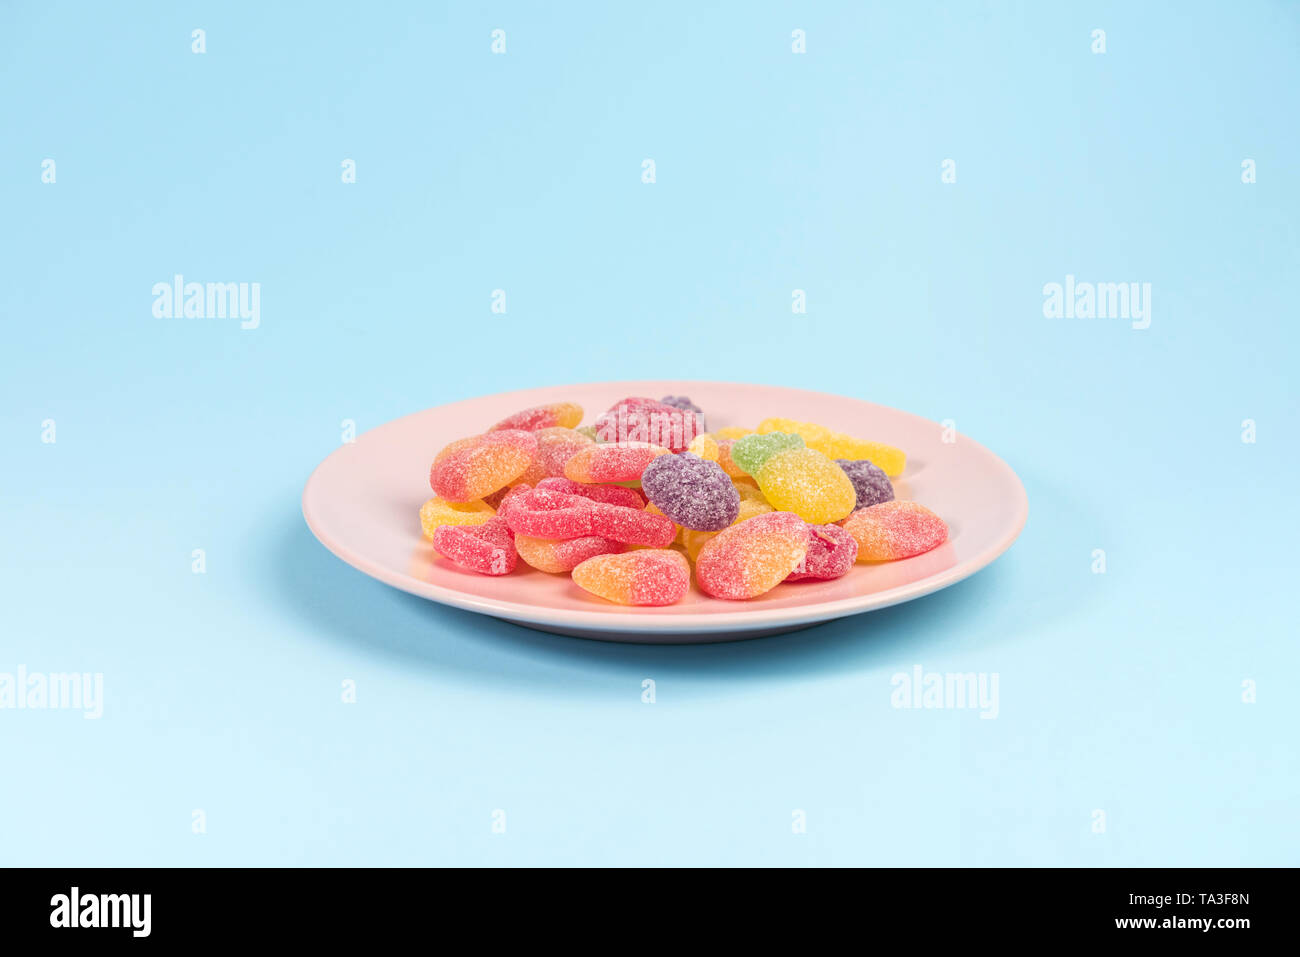 Pink plate with gummy candies on blue background. - Stock Image